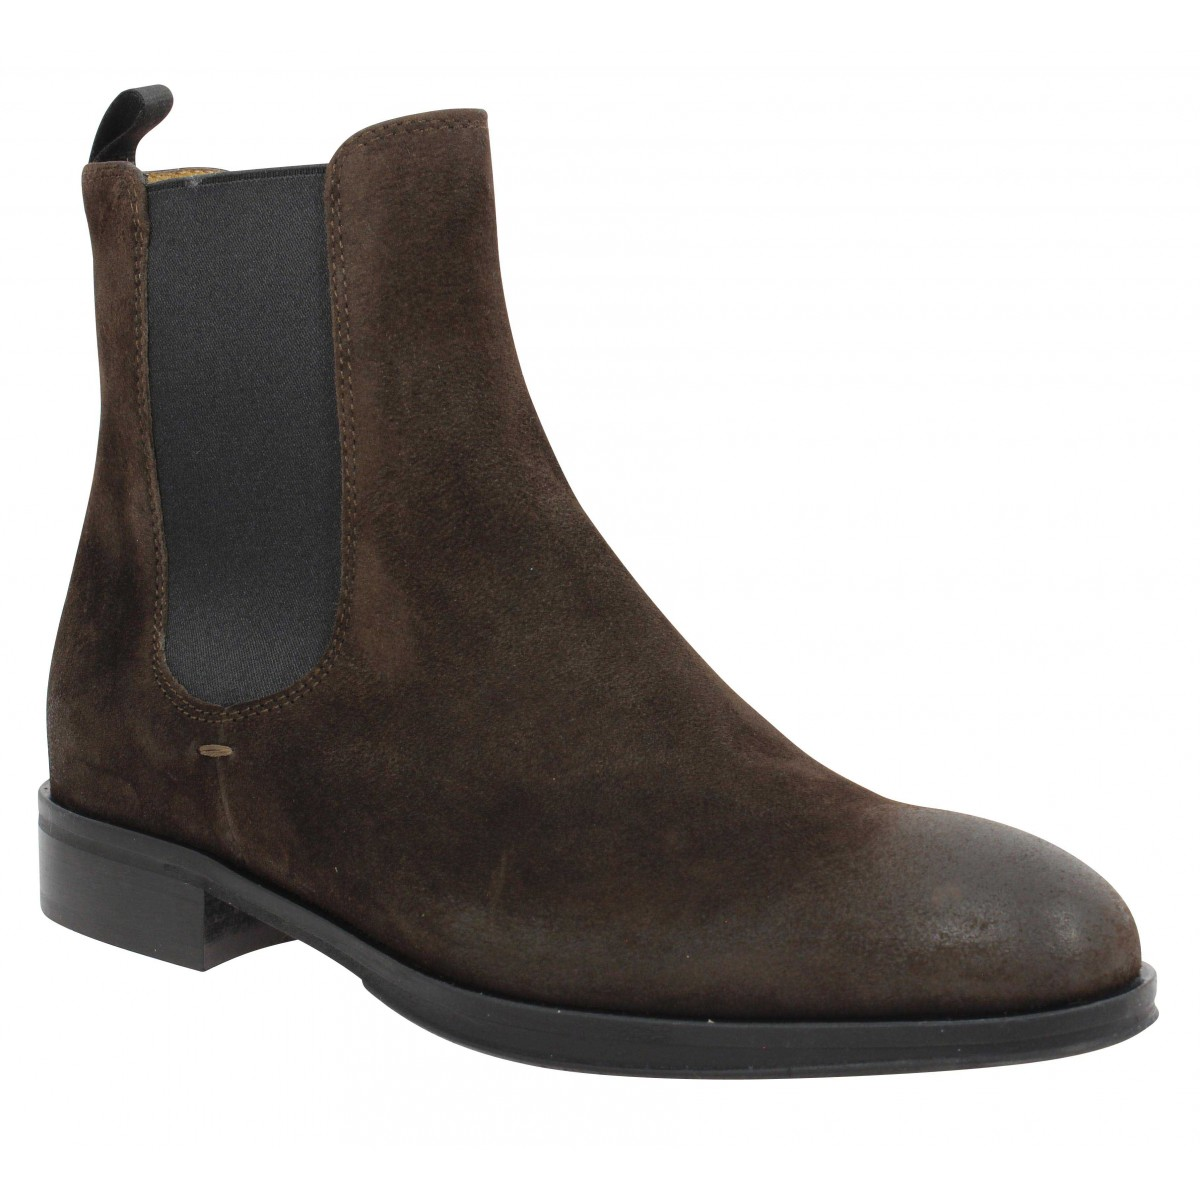 Bottines TRIVER FLIGHT 2590 velours Femme Marron